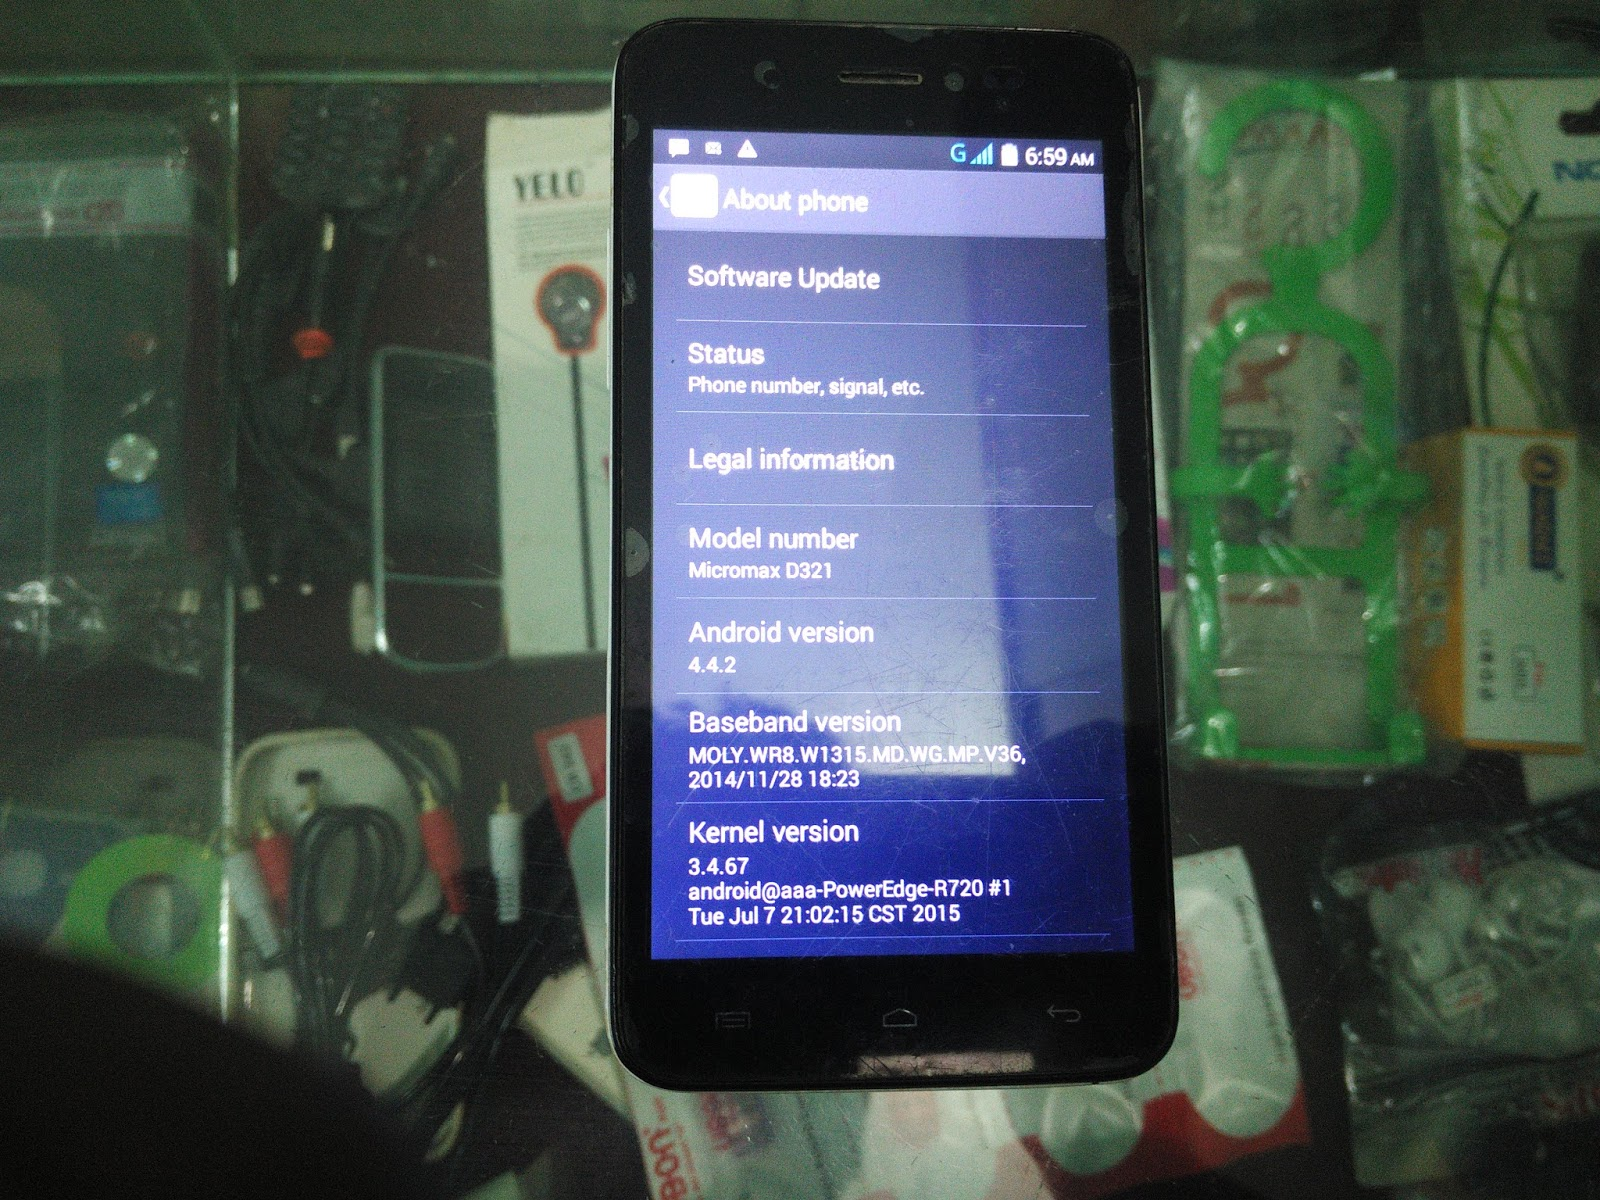 K K TECHNO : Micromax D321 software flashing or bootloop issue and